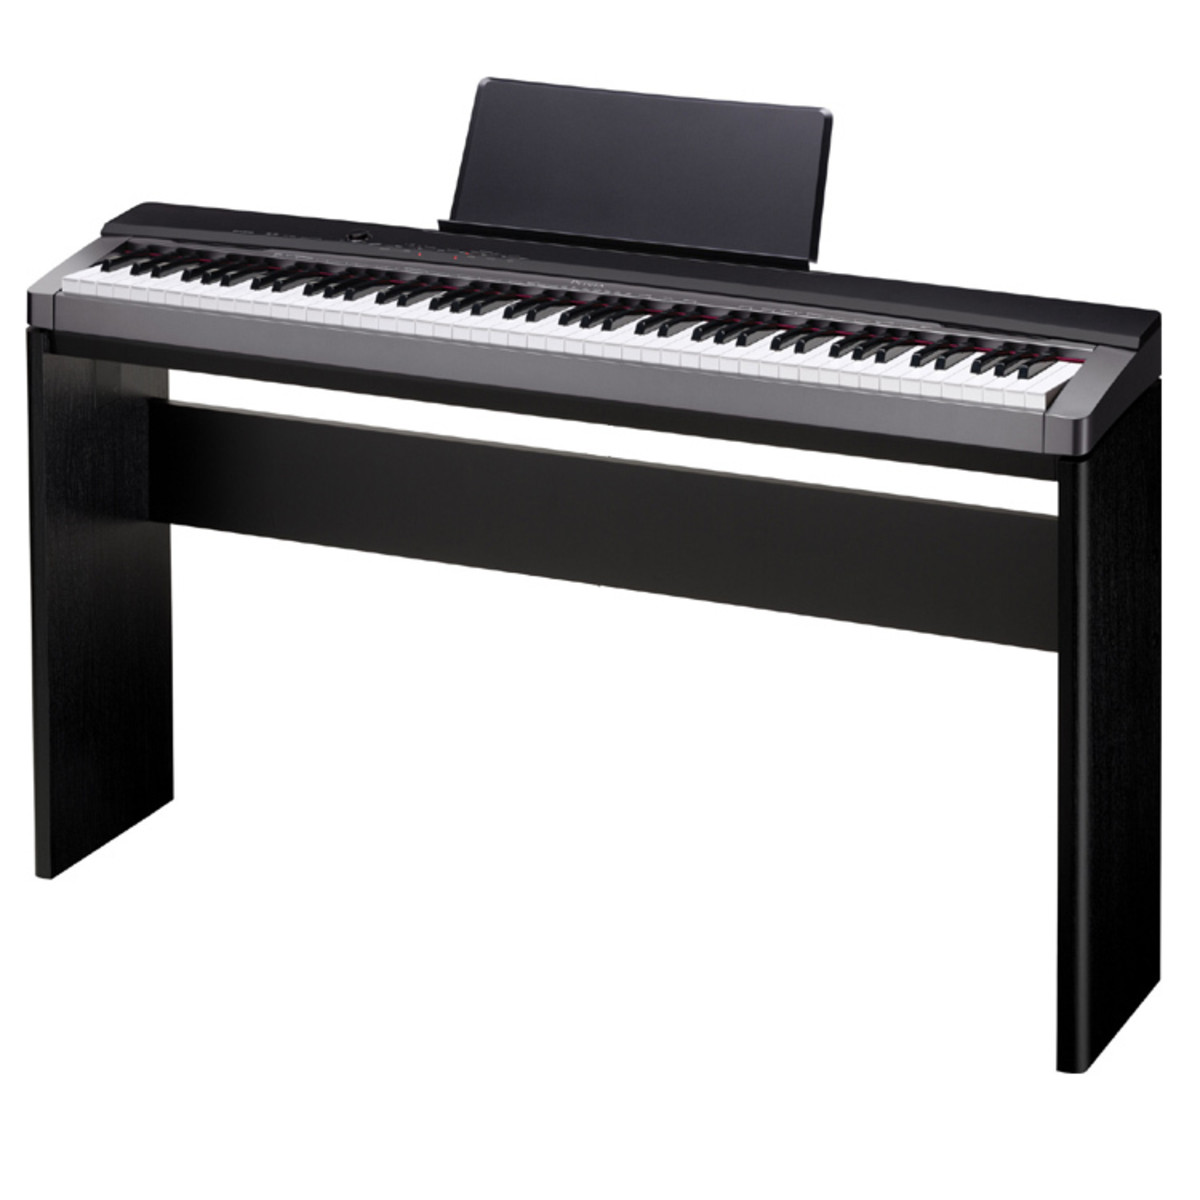 disc casio privia px 130 digital piano with stand at gear4music rh gear4music com casio privia px 130 manual español casio privia px-130 user manual